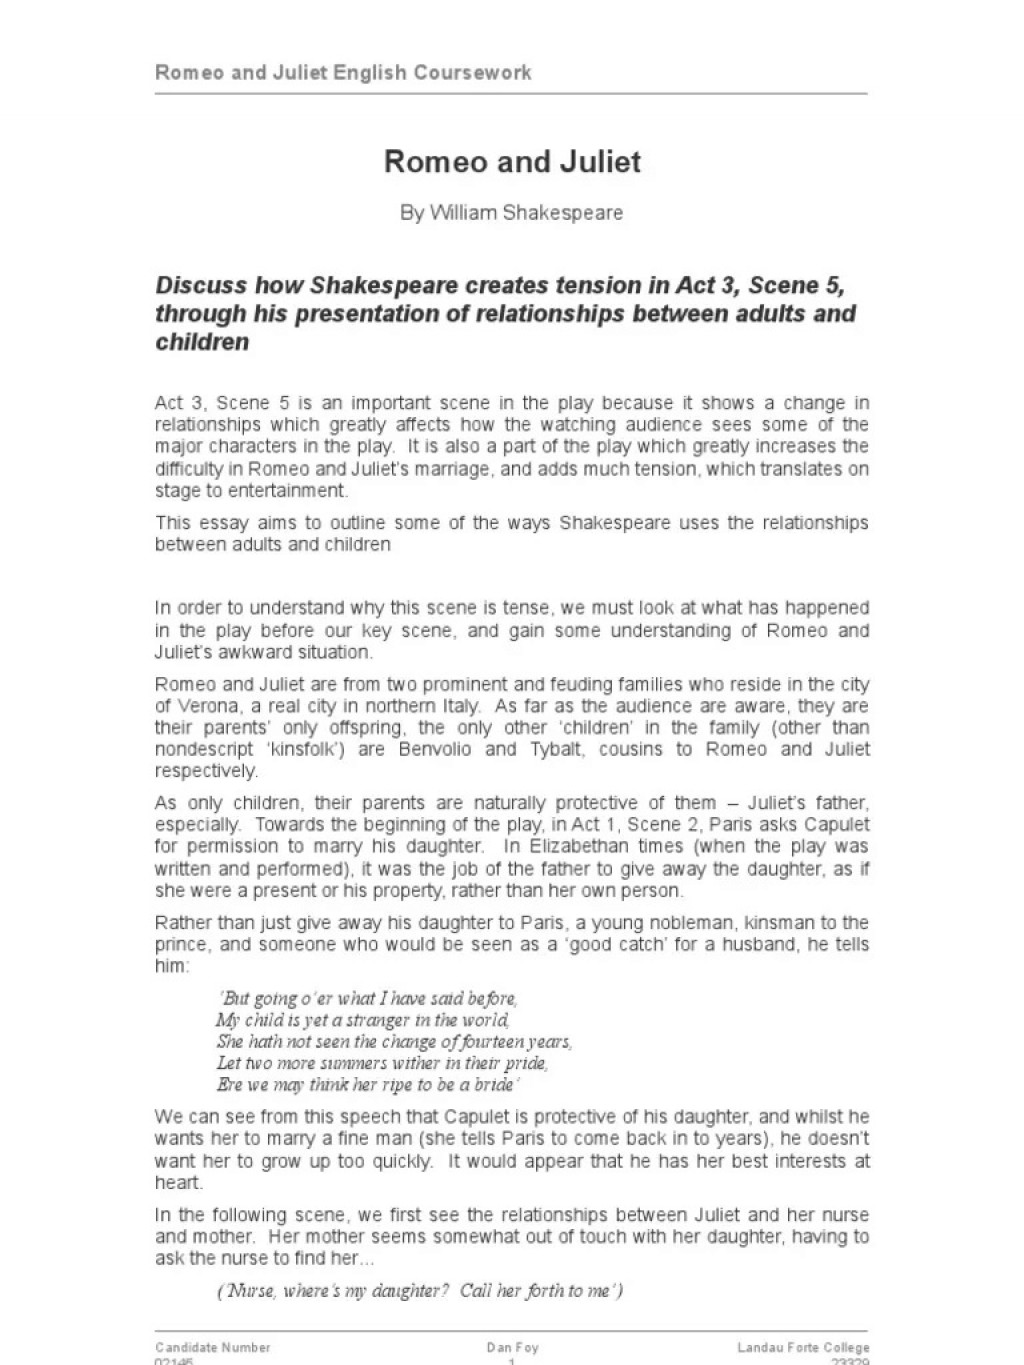 003 Wondrou Romeo And Juliet Essay Design  Who I Responsible For Juliet' Death Introduction Hook Question PdfLarge